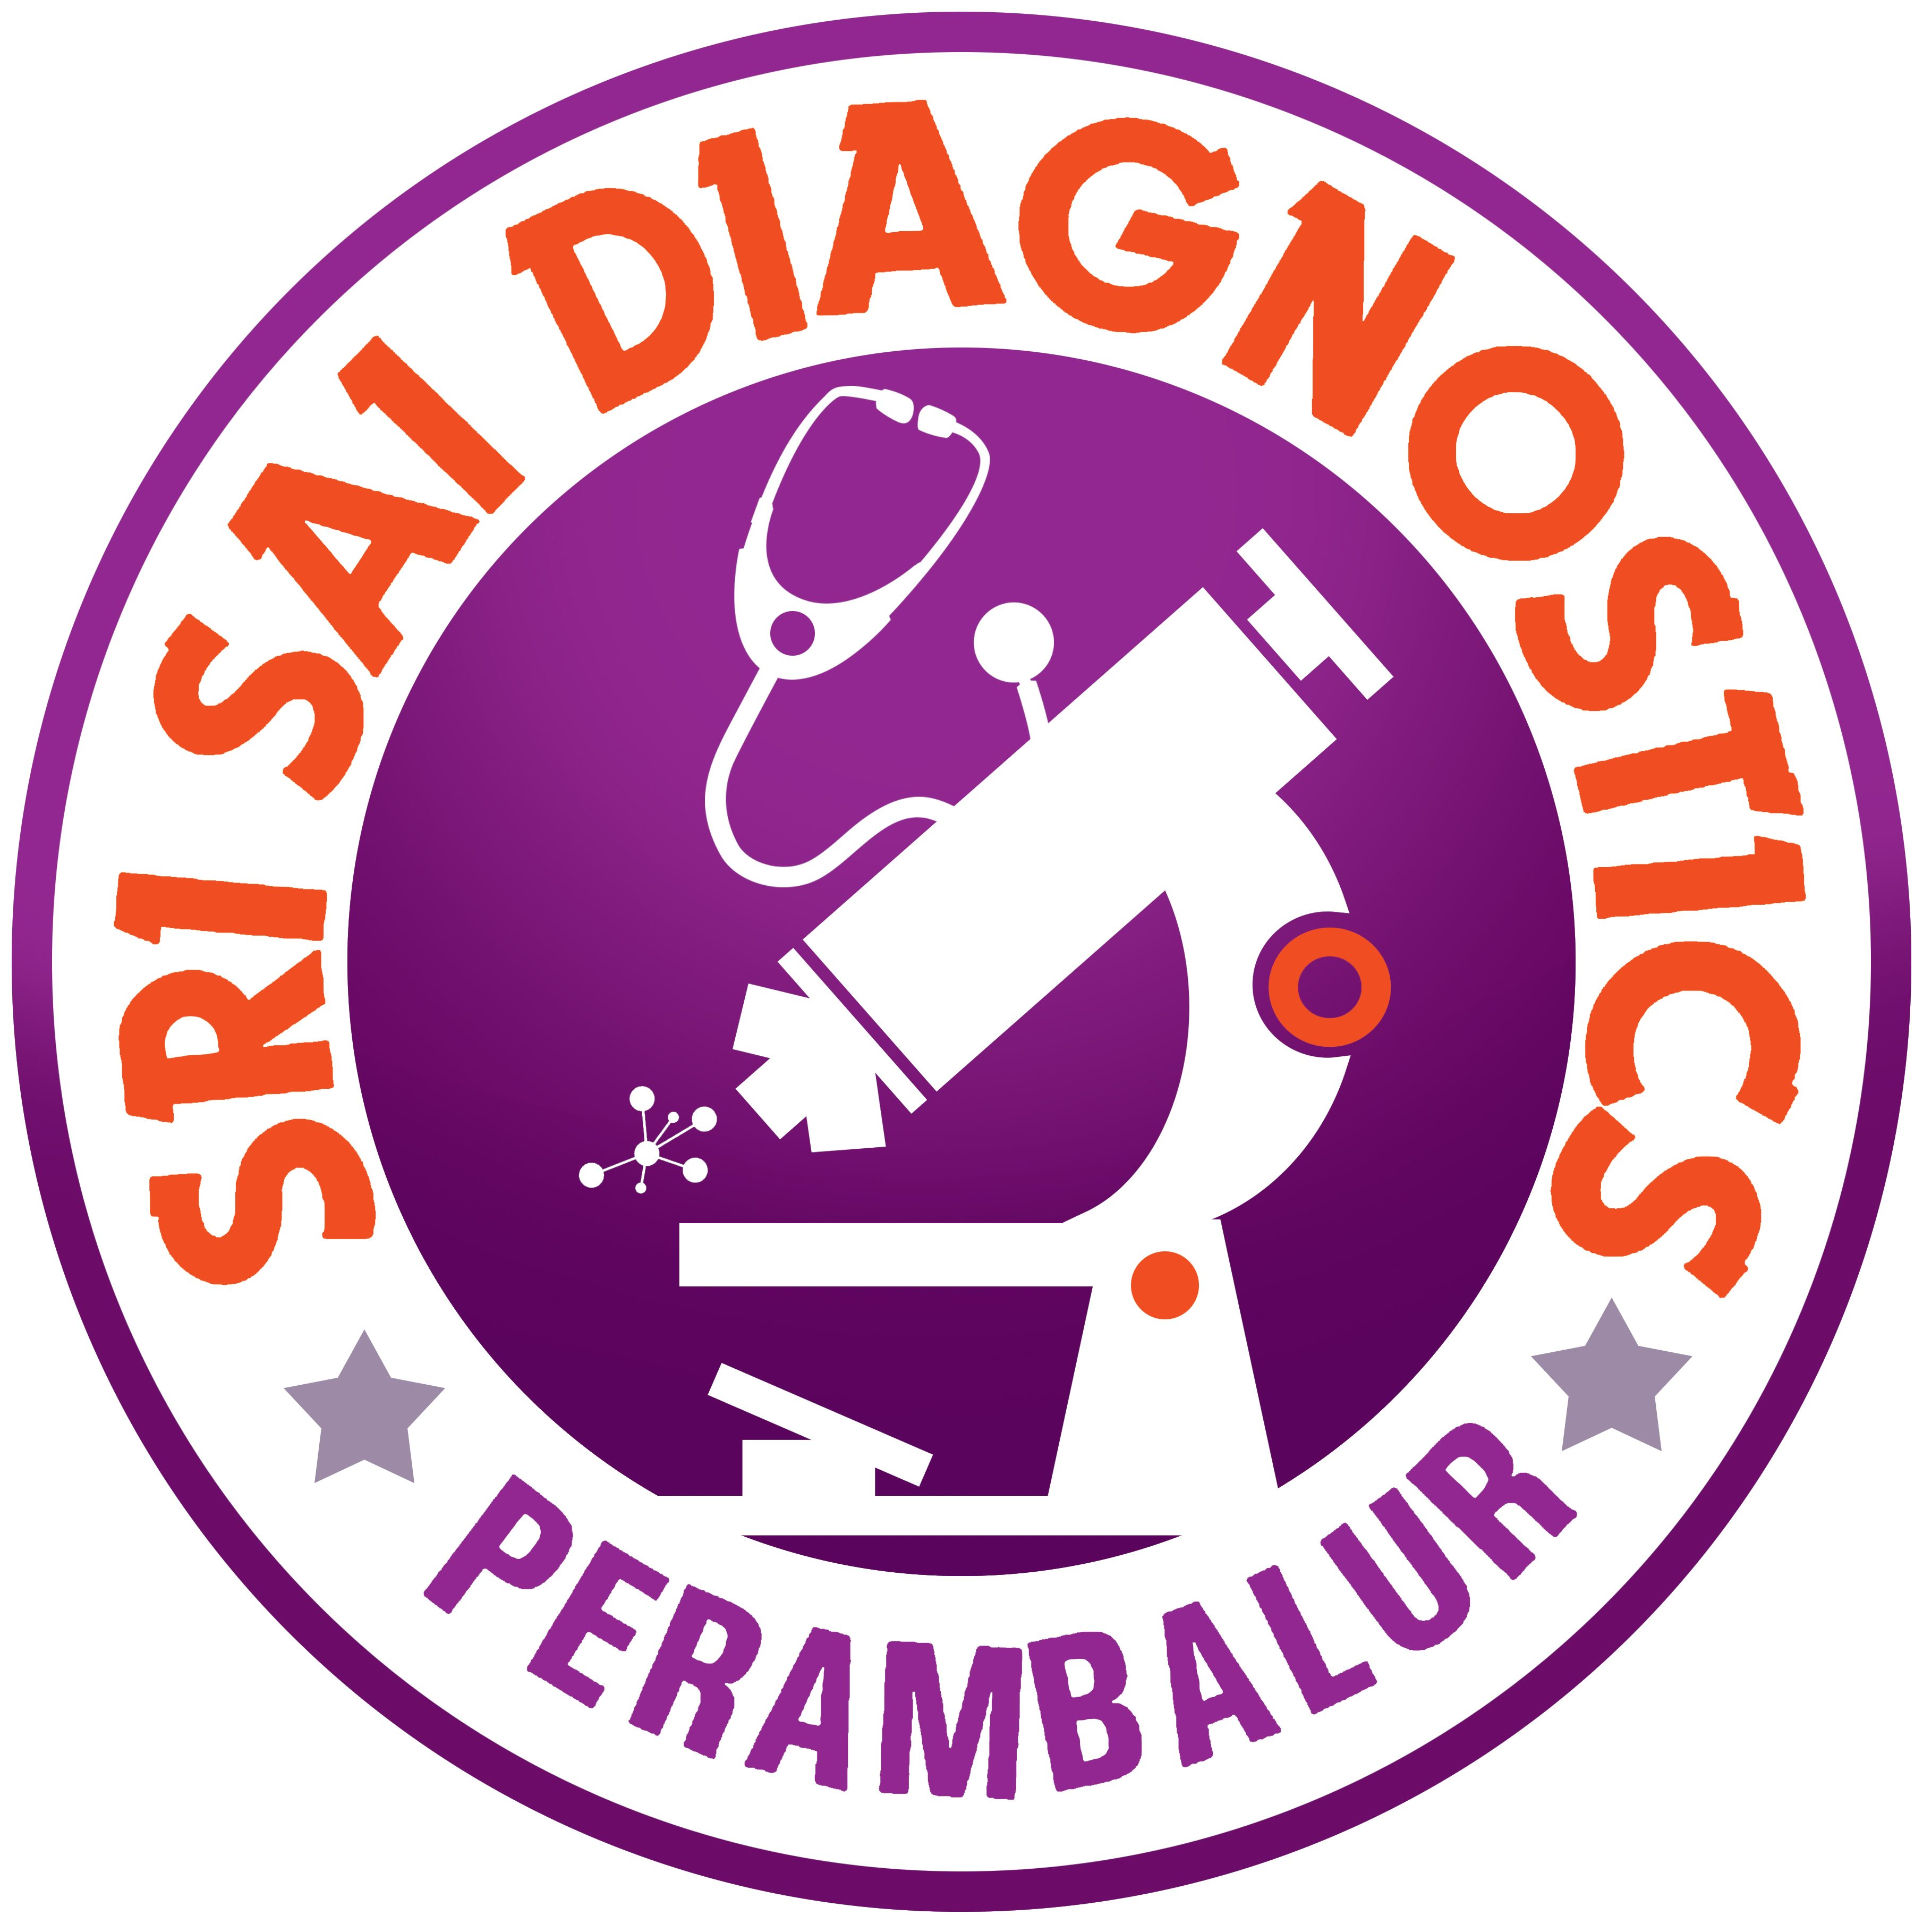 cropped-Sai-Lab-Logo-6.jpg